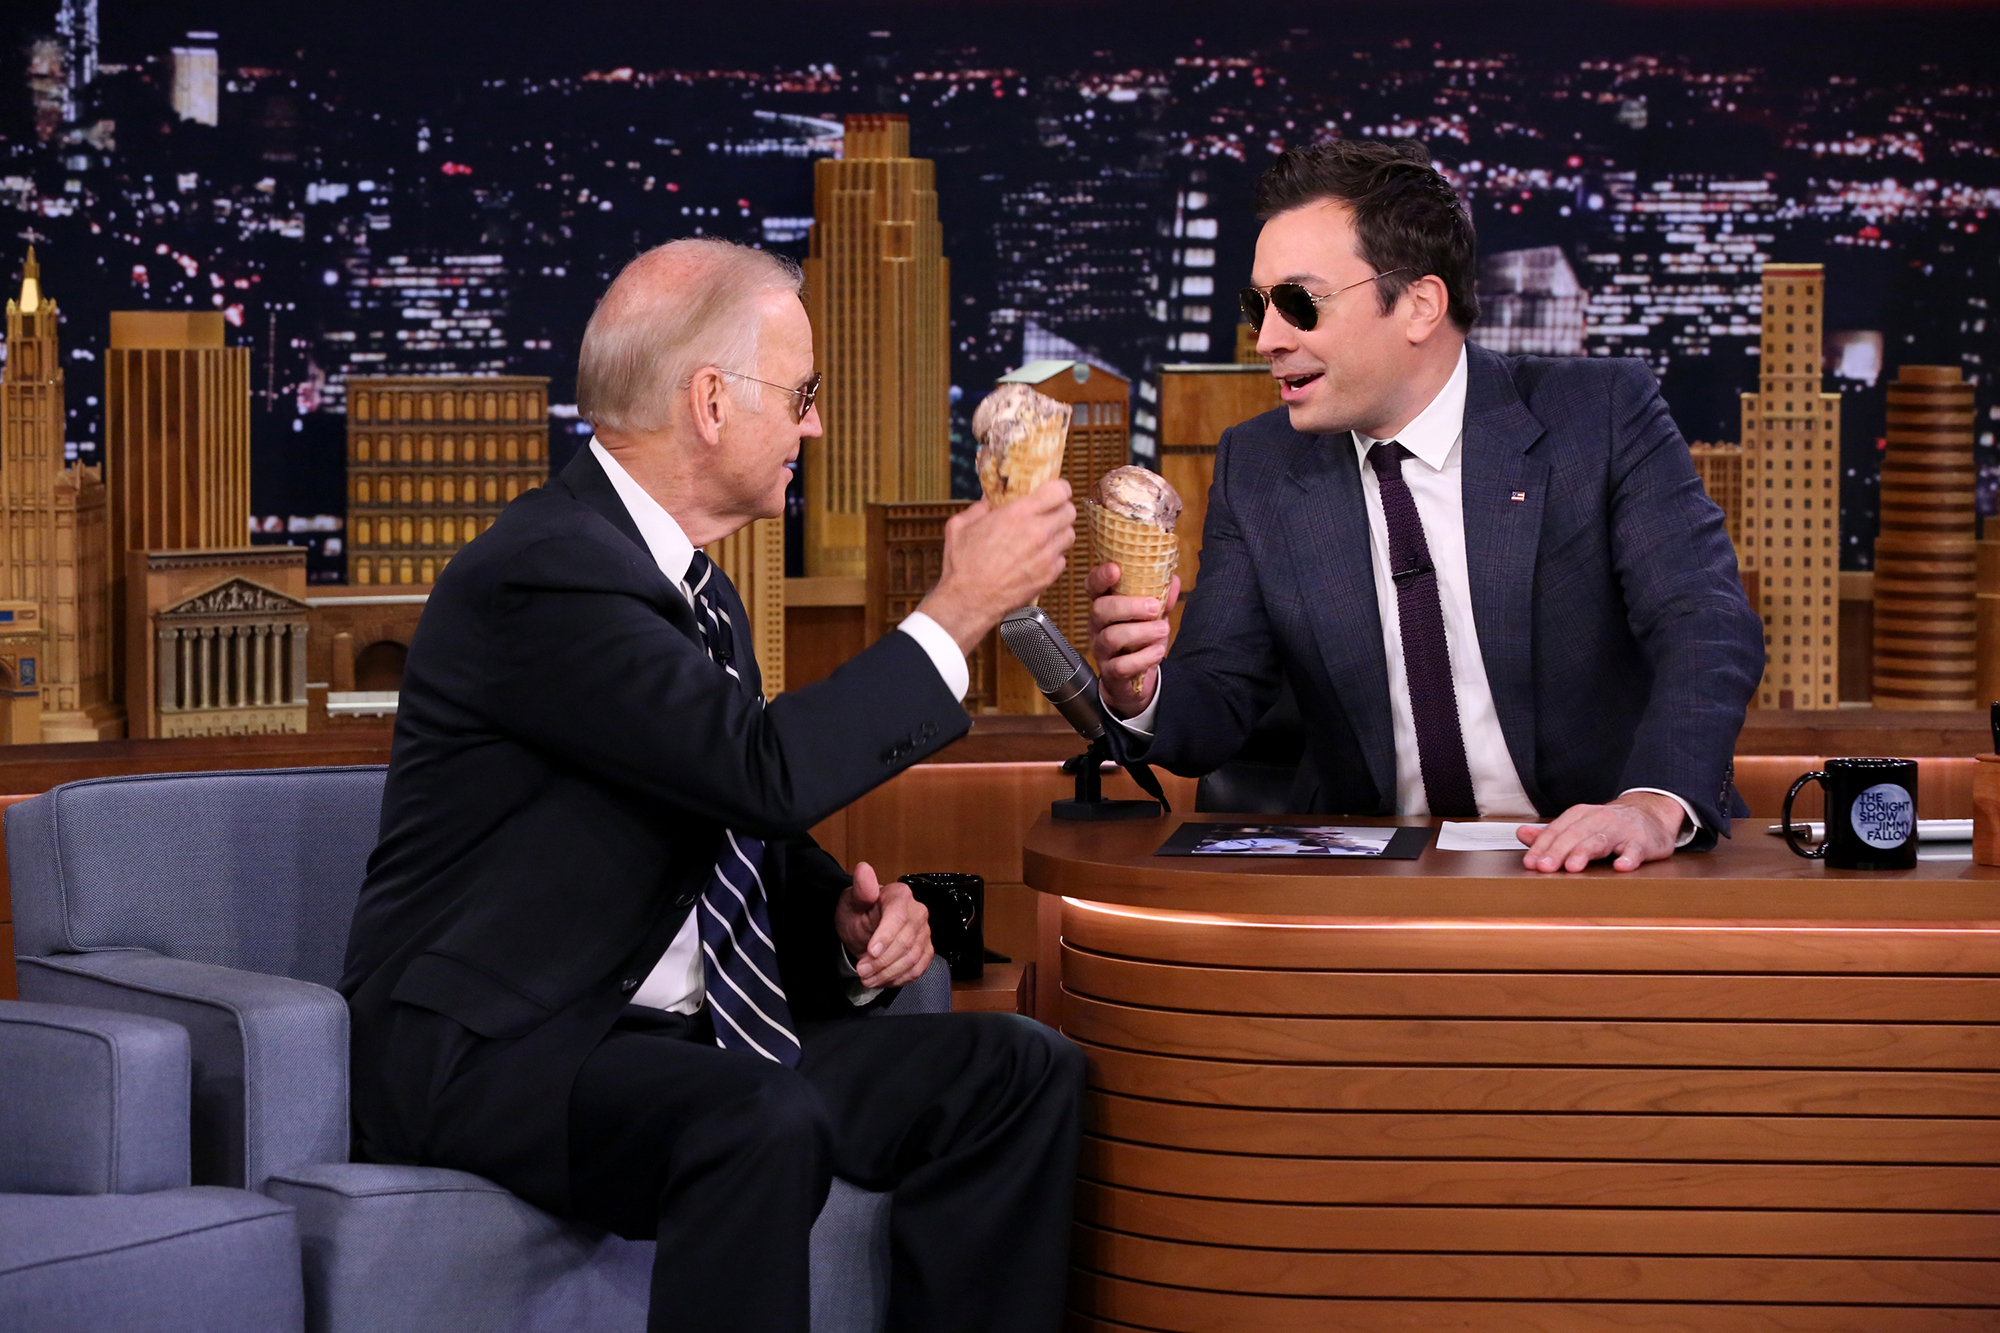 Joe Biden during an interview with host Jimmy Fallon on September 29, 2016 -- (Photo by: Andrew Lipovsky/NBC/NBCU Photo Bank via Getty Images)